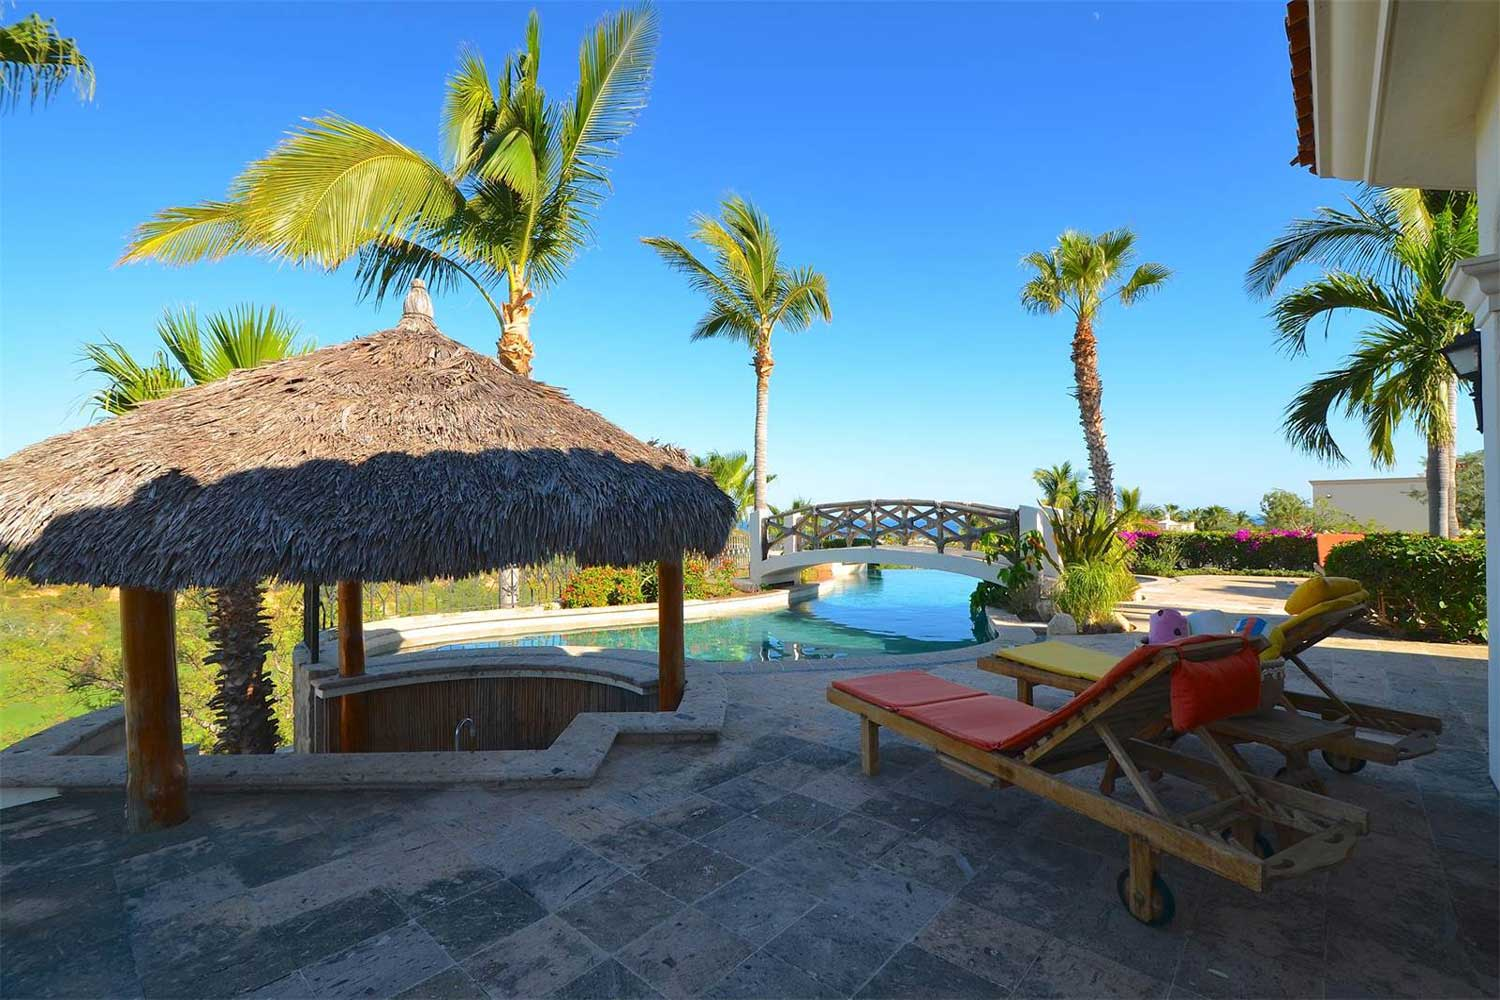 <b>San Jose Del Cabo, Mexico</b><br/><i>5 Bedrooms, 4,949 sq. ft.</i><br/>Resort-style villa with golf course views